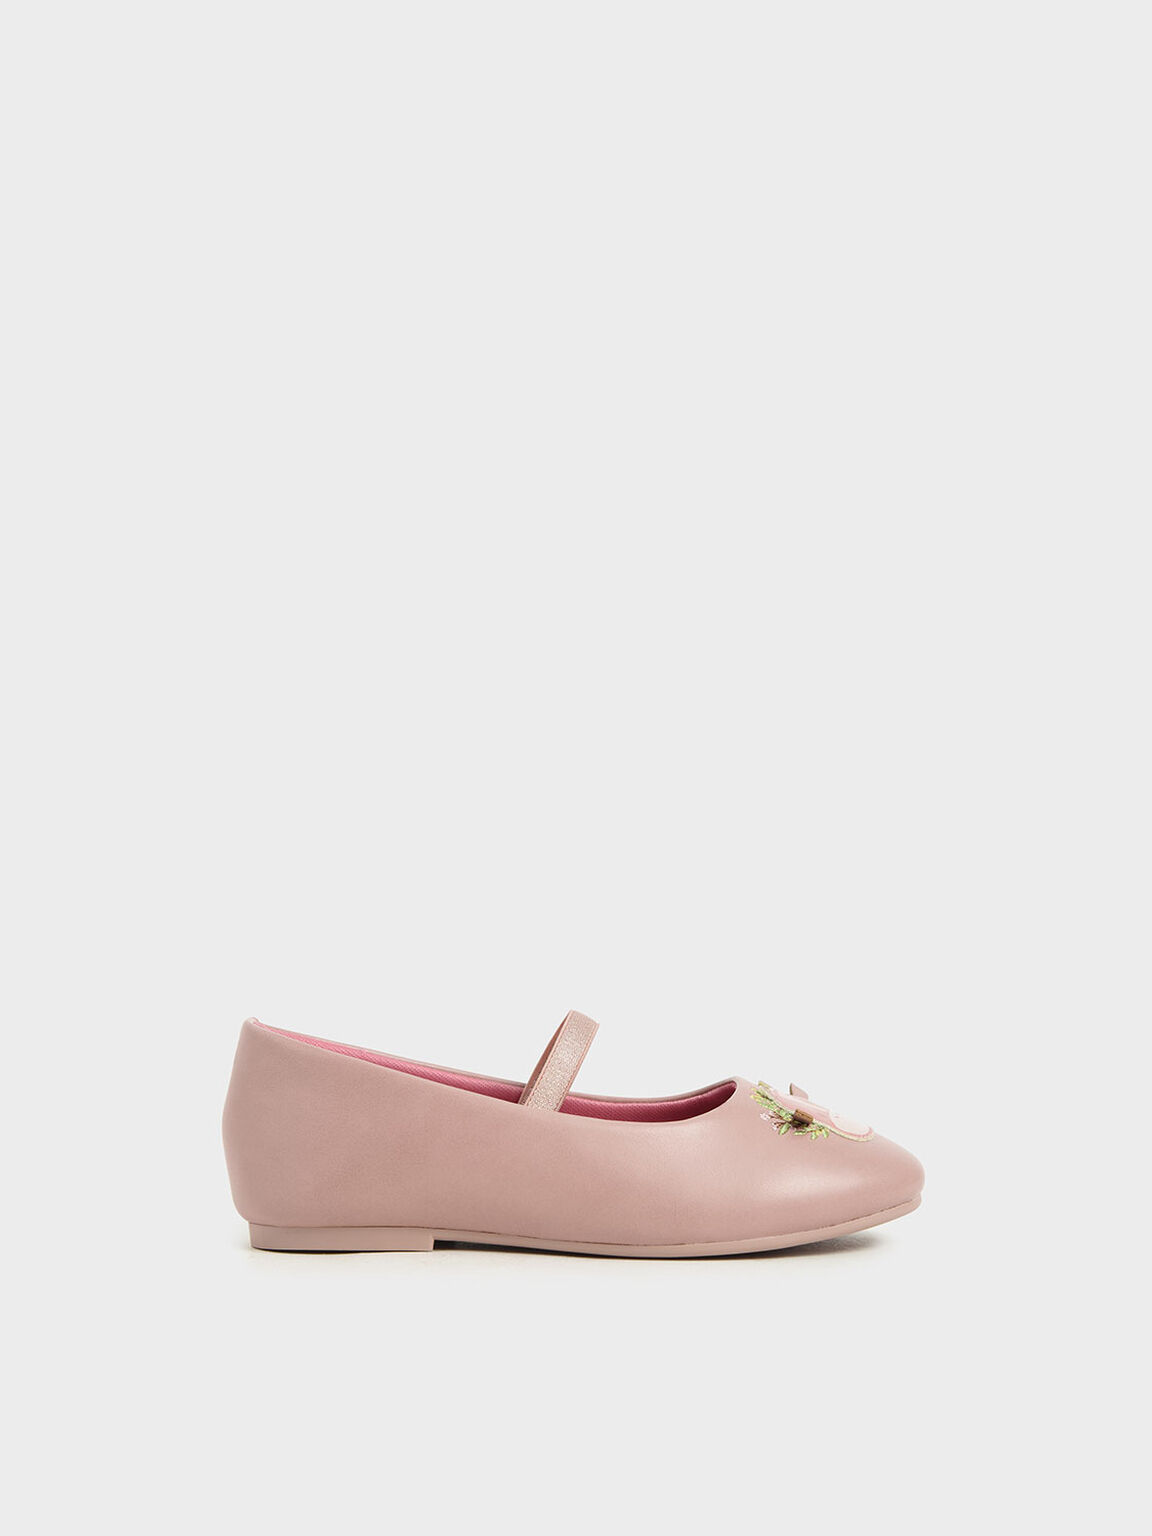 Girls' Cow Motif Ballerinas, Pink, hi-res